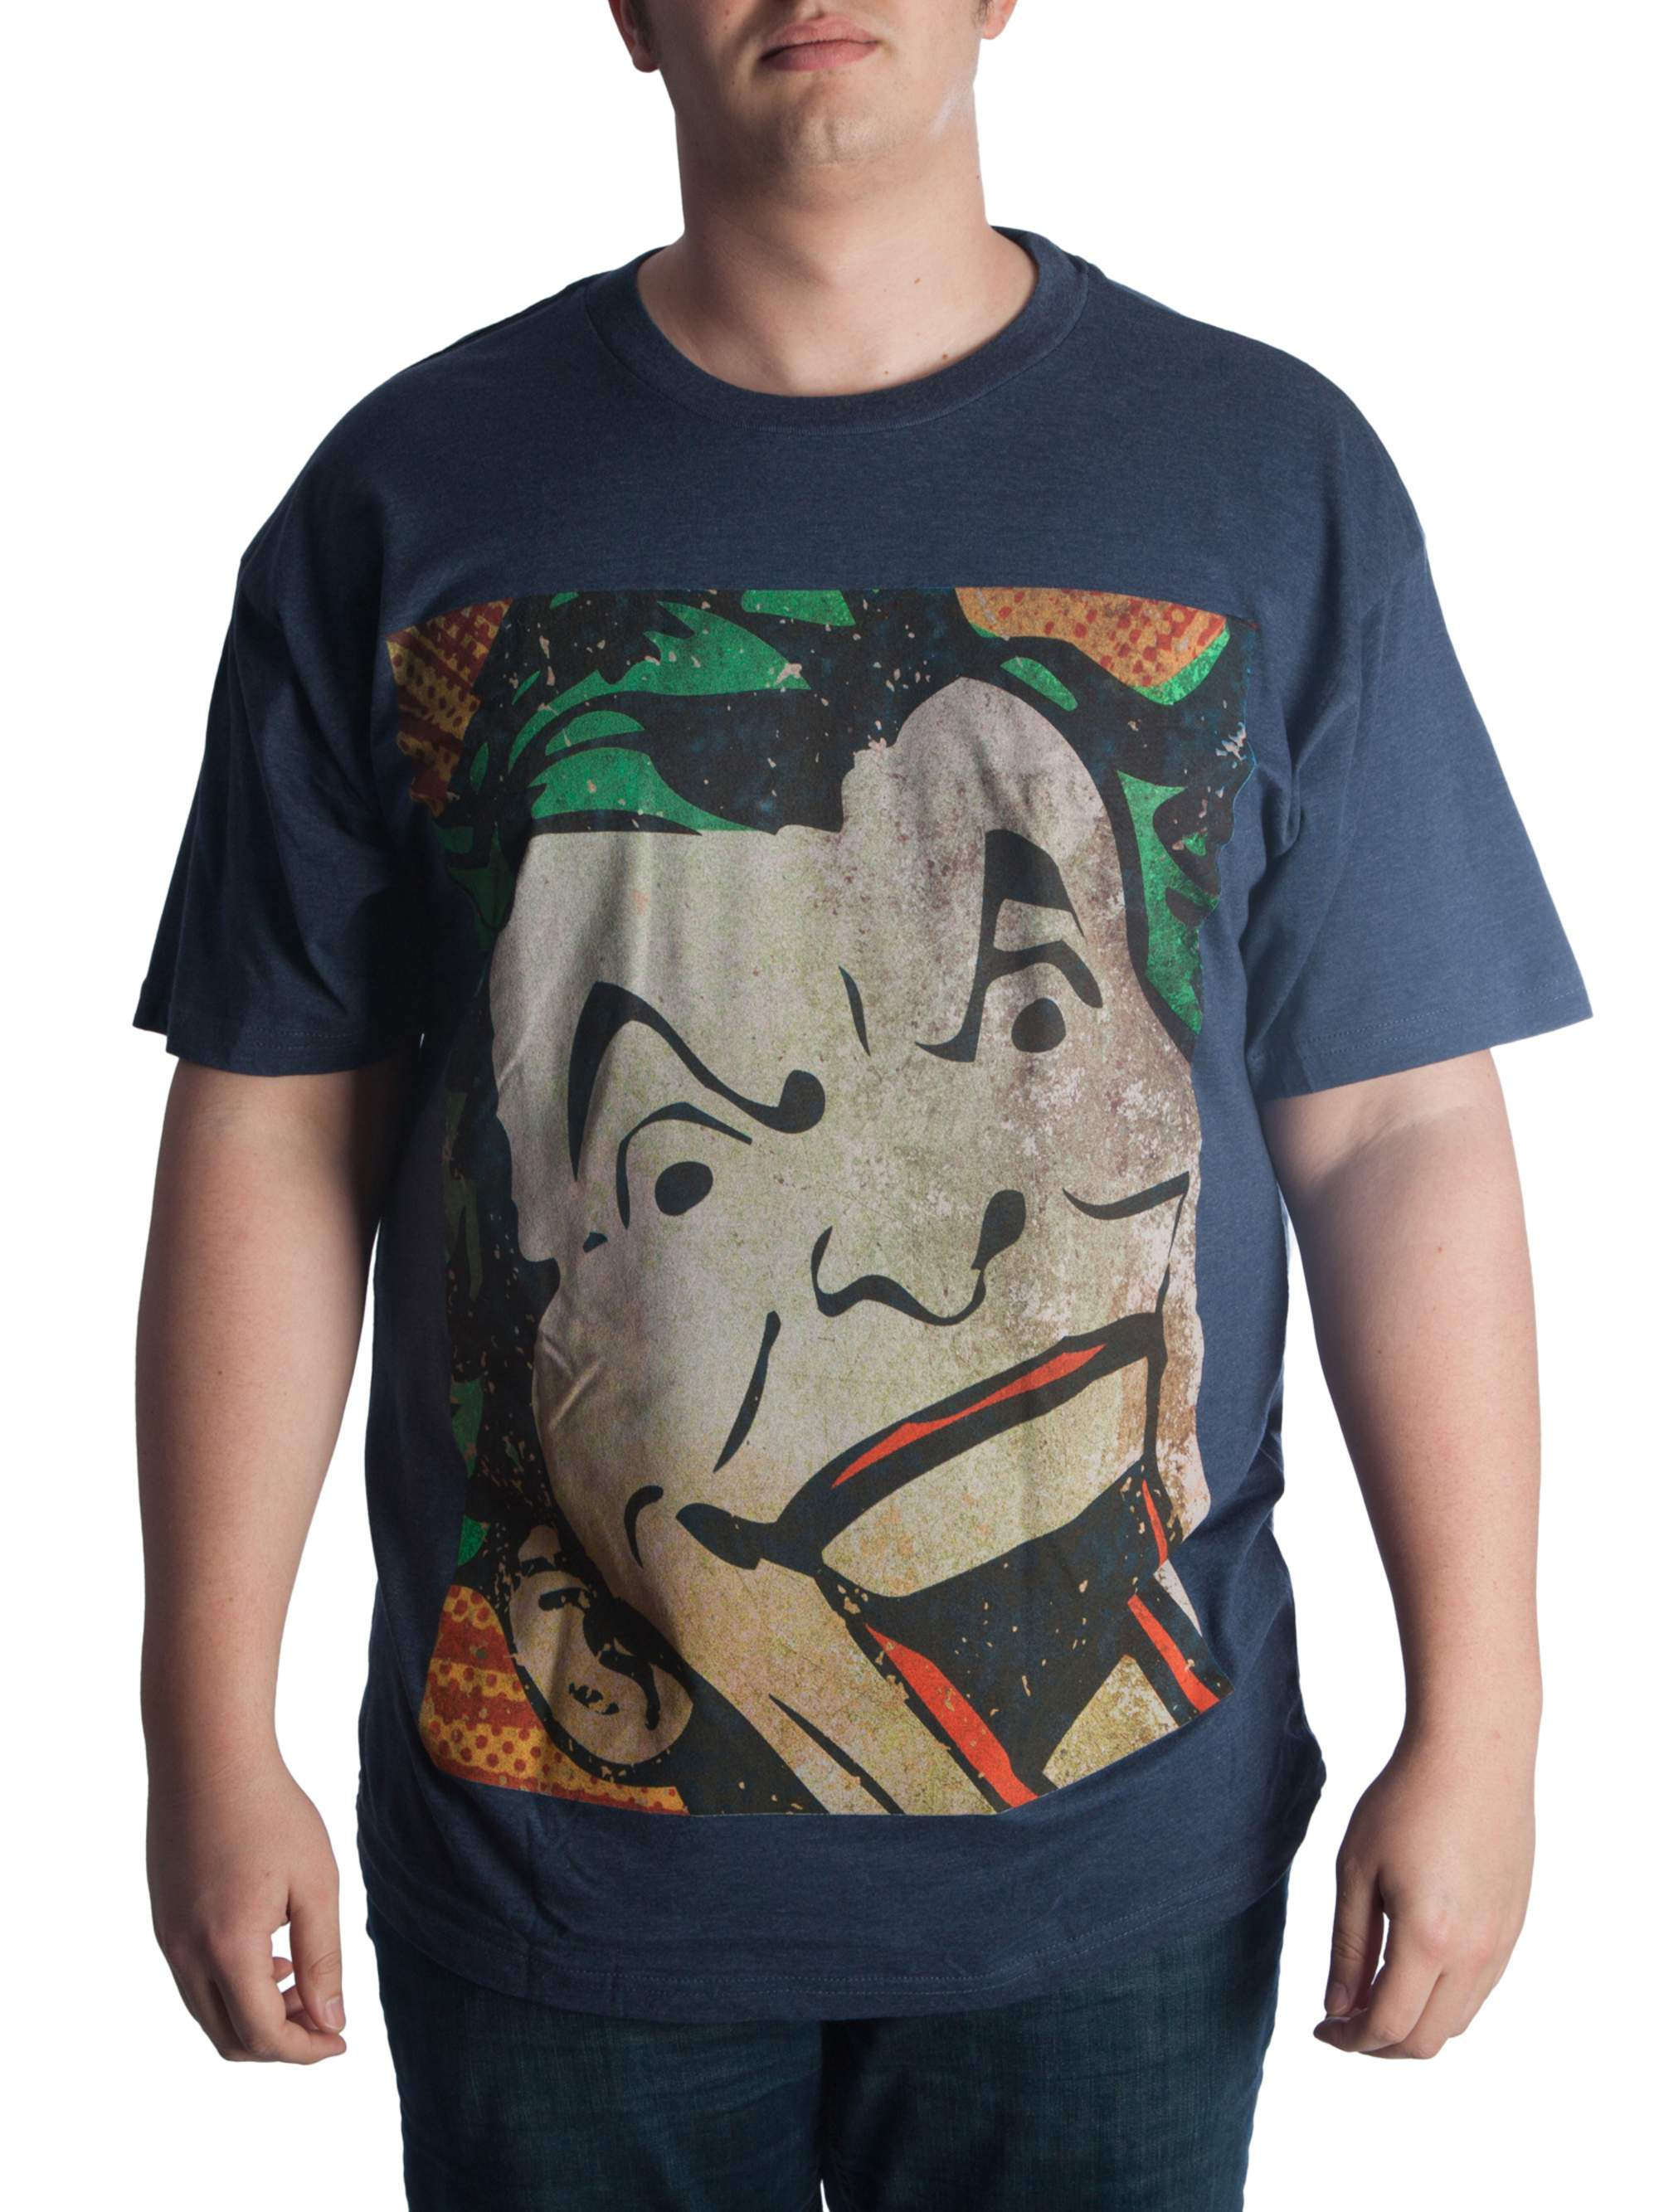 DC Comics Big Men's Joker Laughing Short Sleeve Graphic T-Shirt, up to Size 6XL